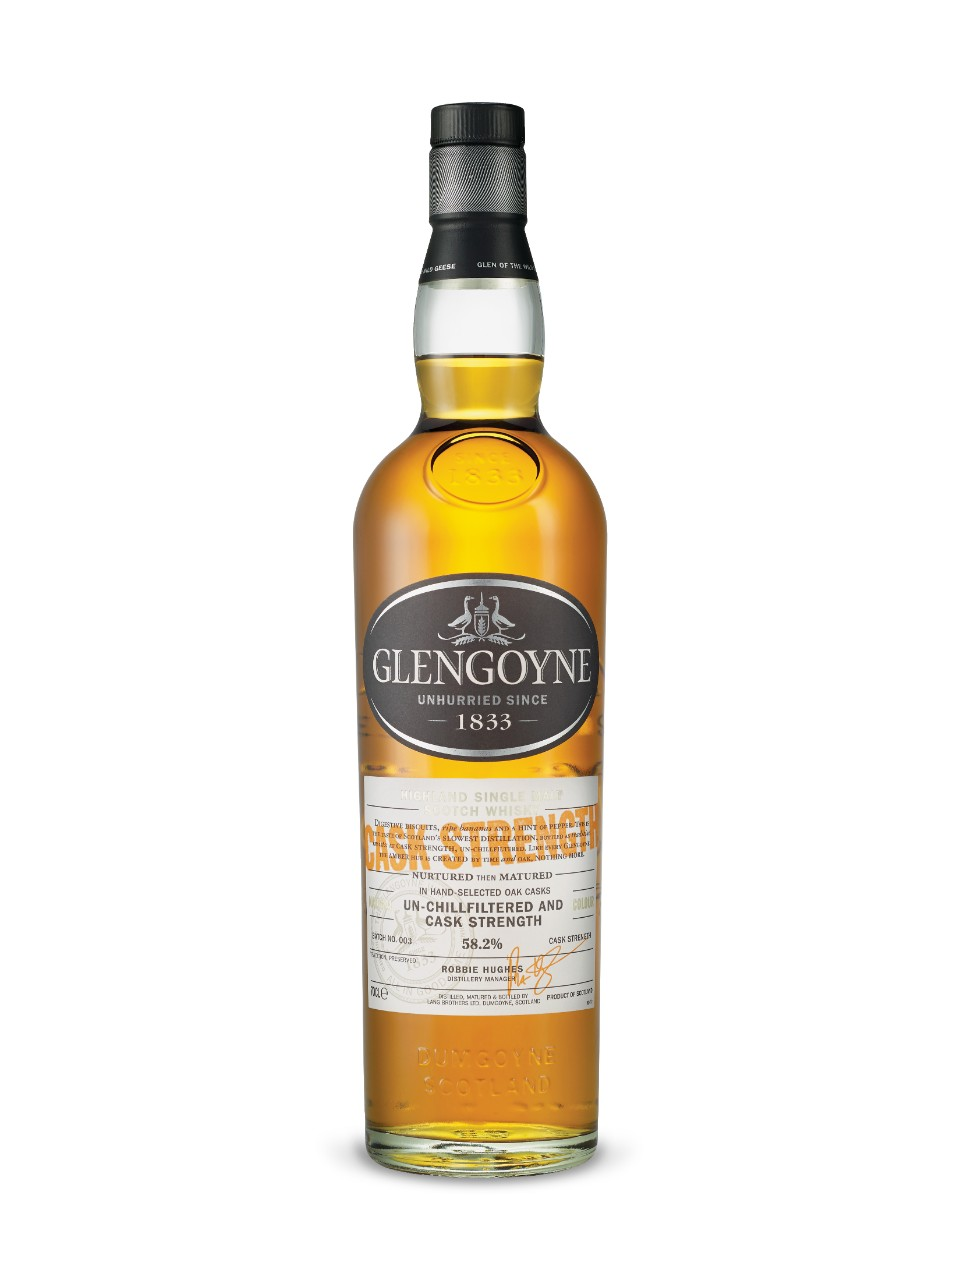 Glengoyne Cask Strength Old Highland Single Malt